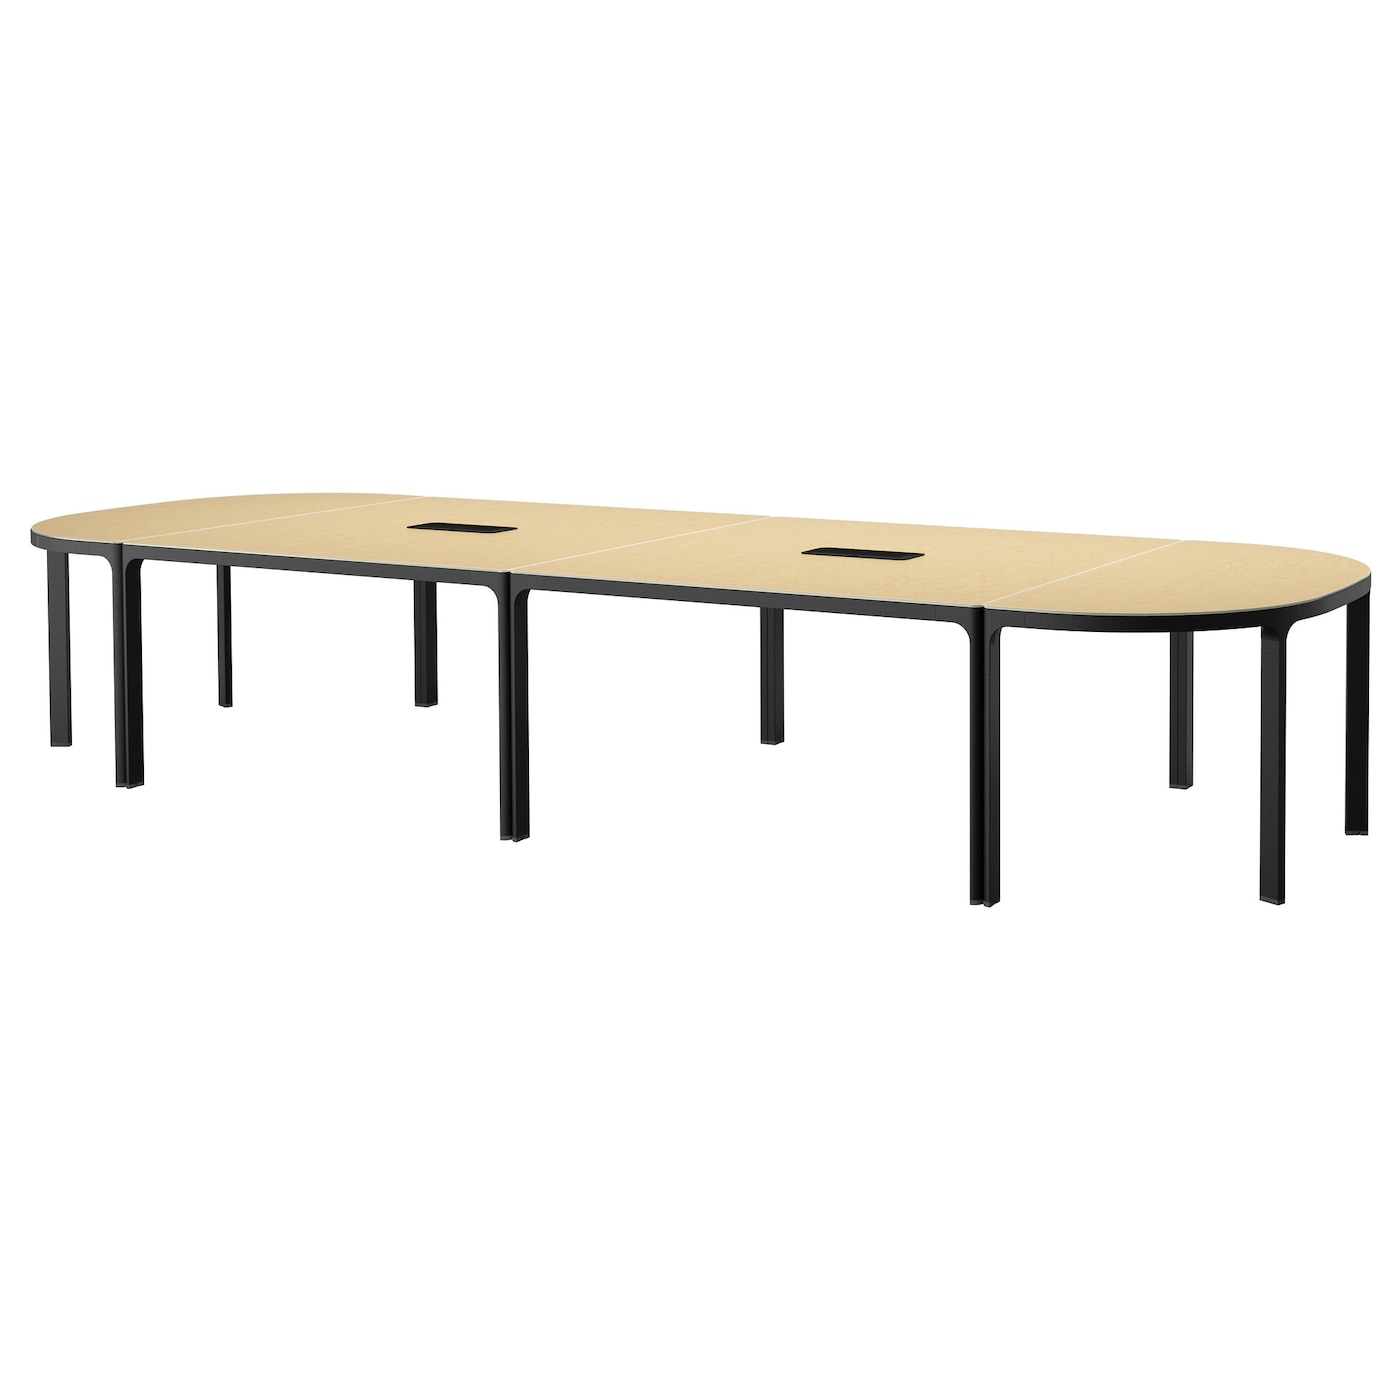 Bekant conference table birch veneer black 420x140 cm ikea for Table salle a manger 80 cm largeur